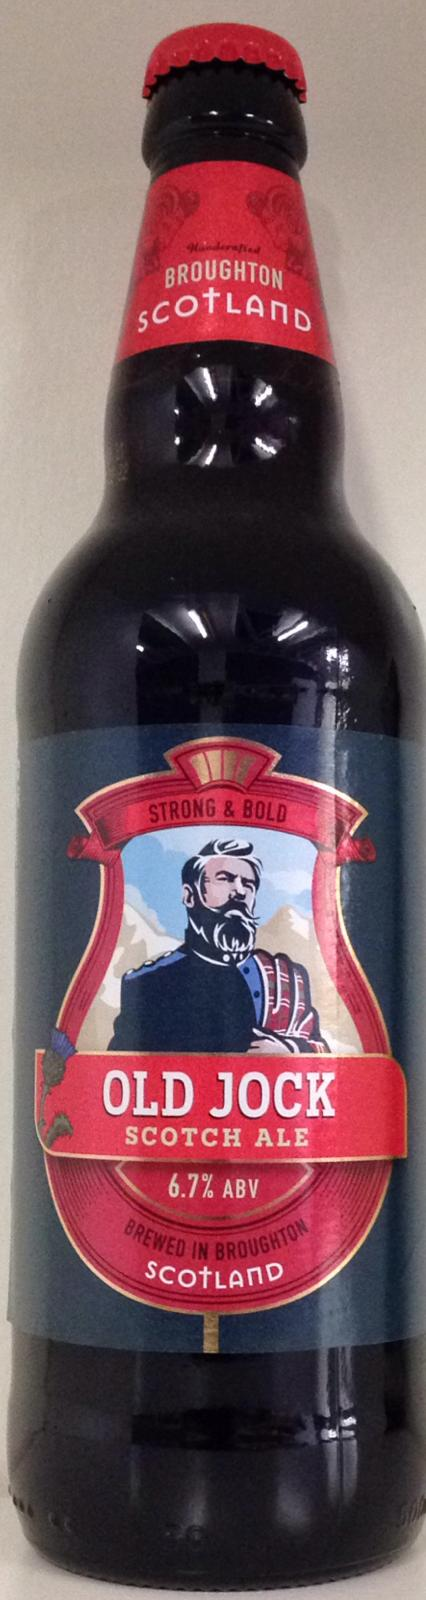 Old Jock Scotch Ale 500ml